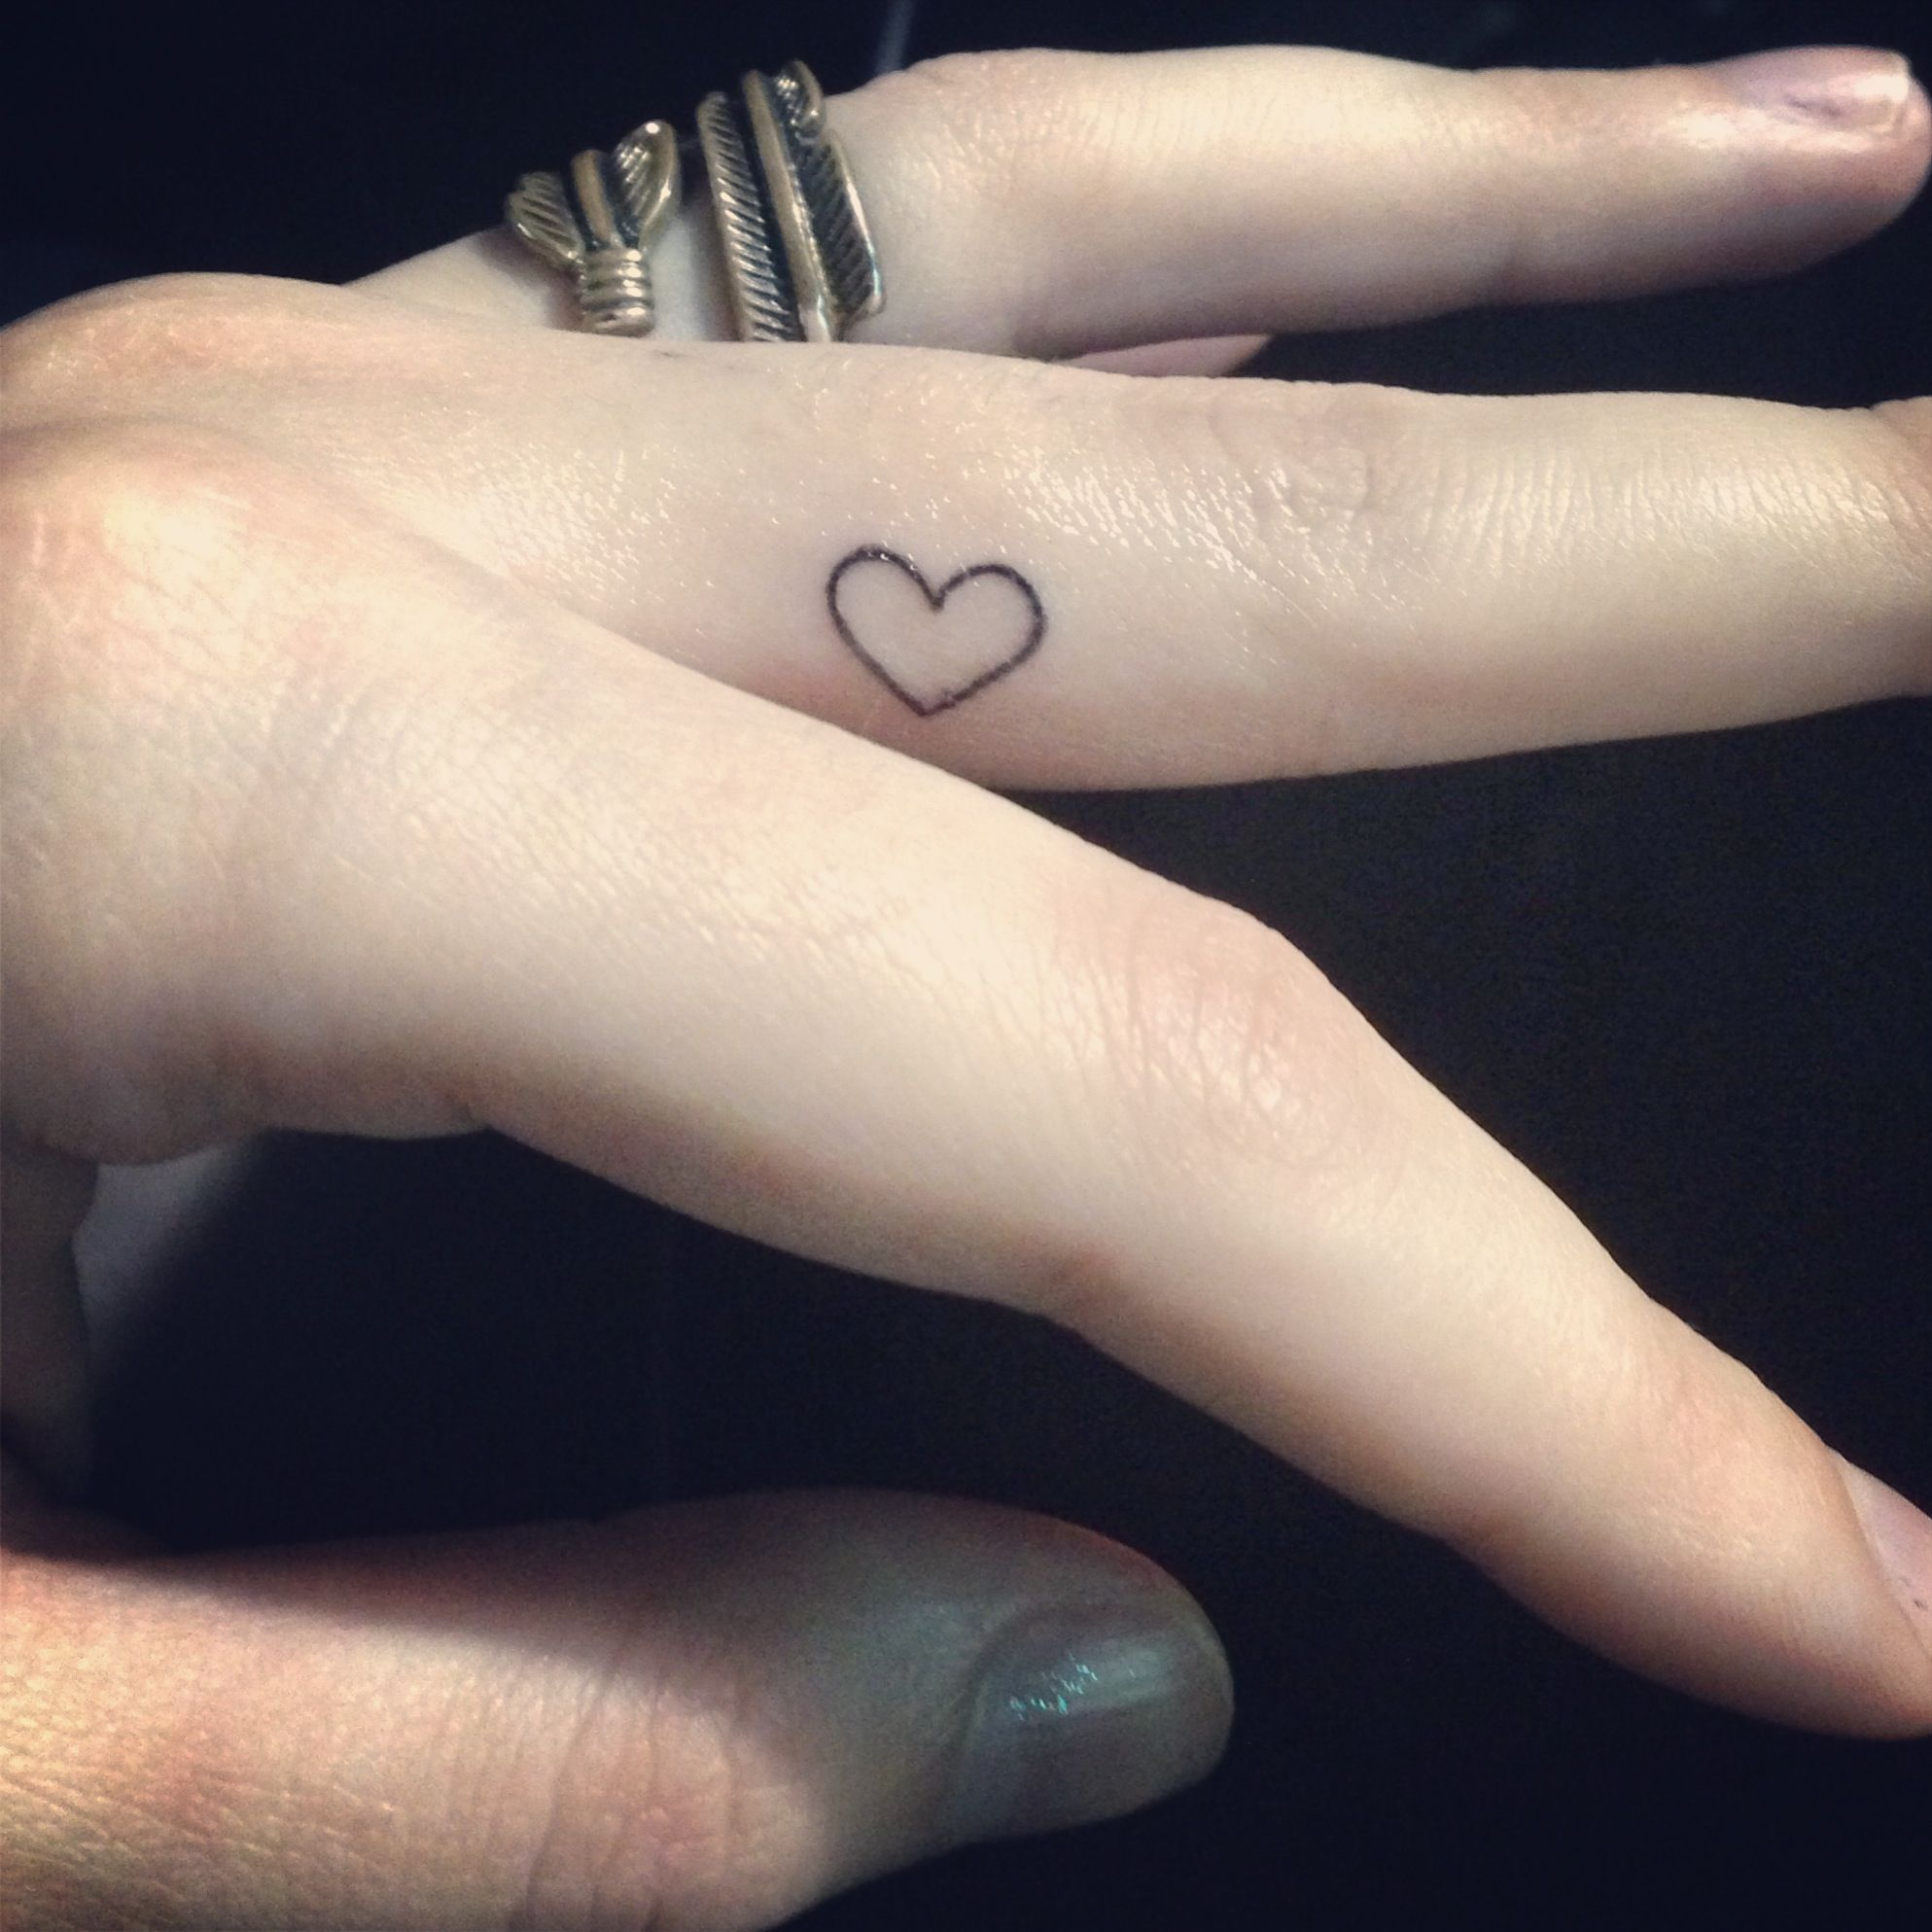 25 Small Tattoo Ideas For Girls Fingers Small finger